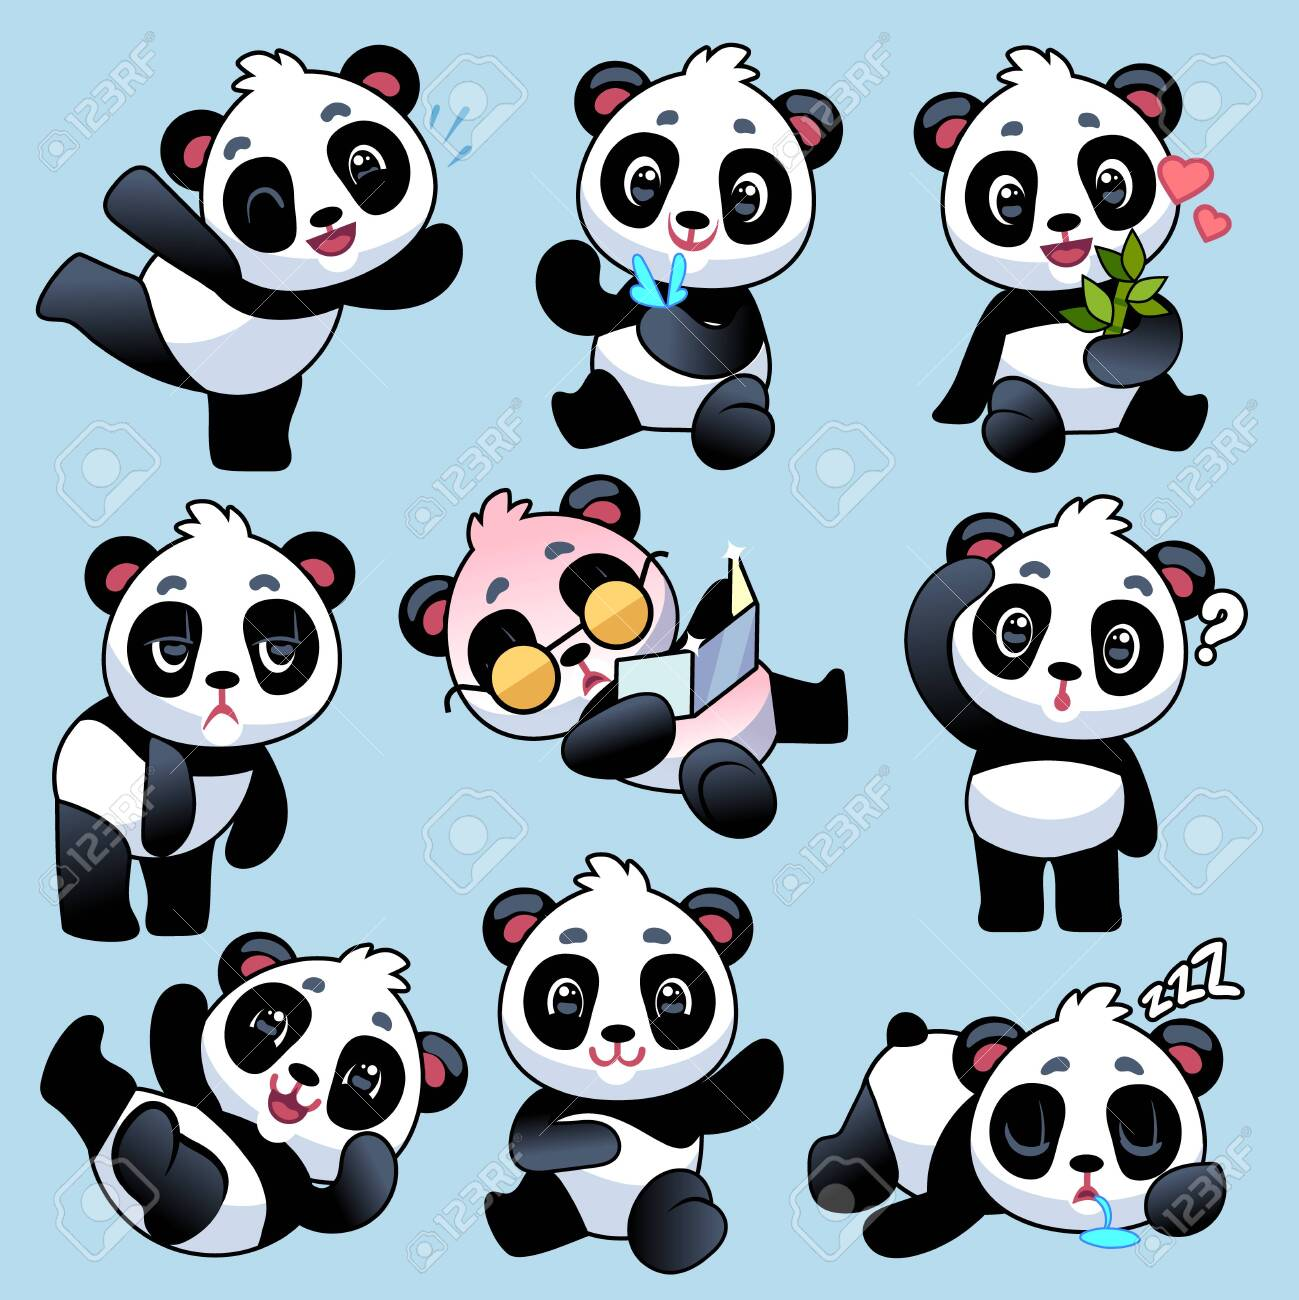 Panda. Cute asian bears in different poses, eating bamboo stem and sleeping, playing in zoo or jungle, funny young animals cartoon vector baby characters - 139760555